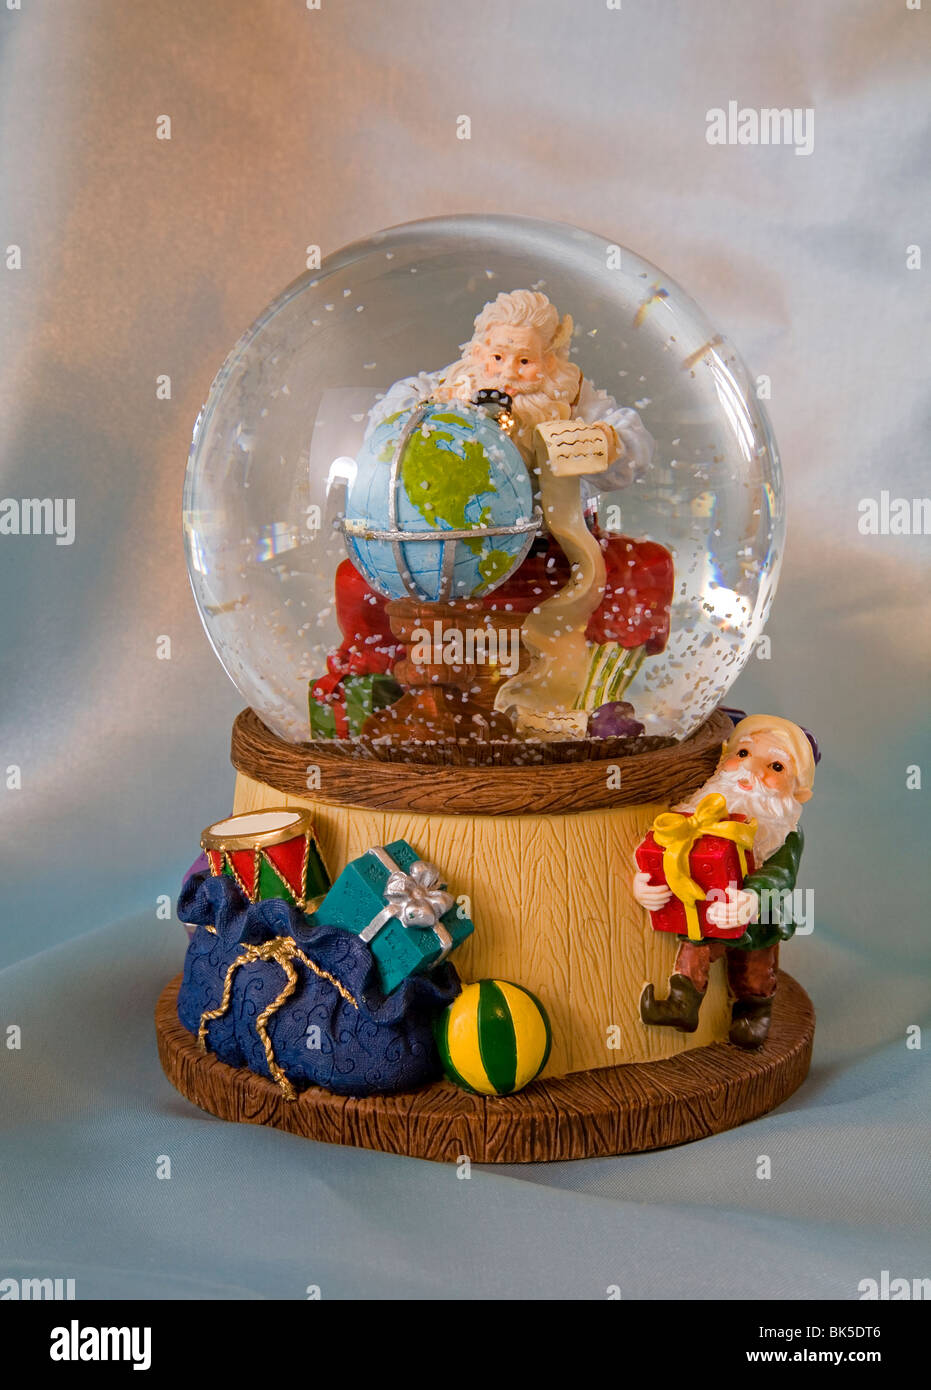 A snow globe featuring santa claus with a globe. - Stock Image